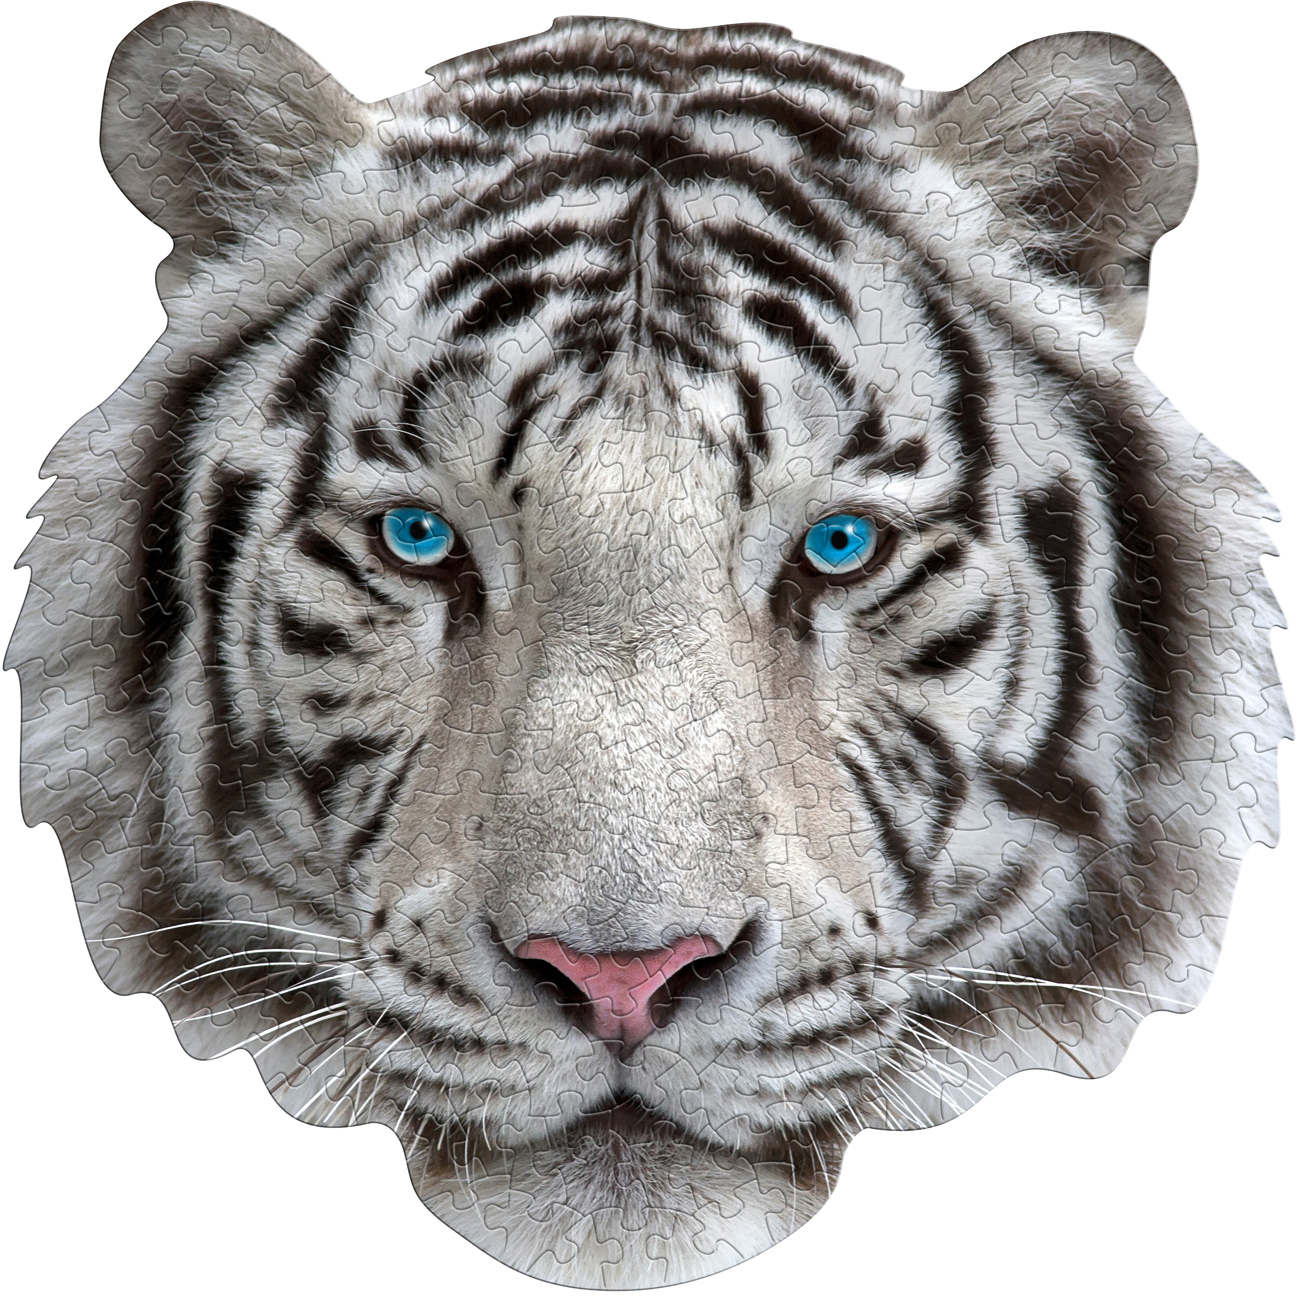 Madd Capp Mini Puzzle - I AM White Tiger Cats Shaped Puzzle